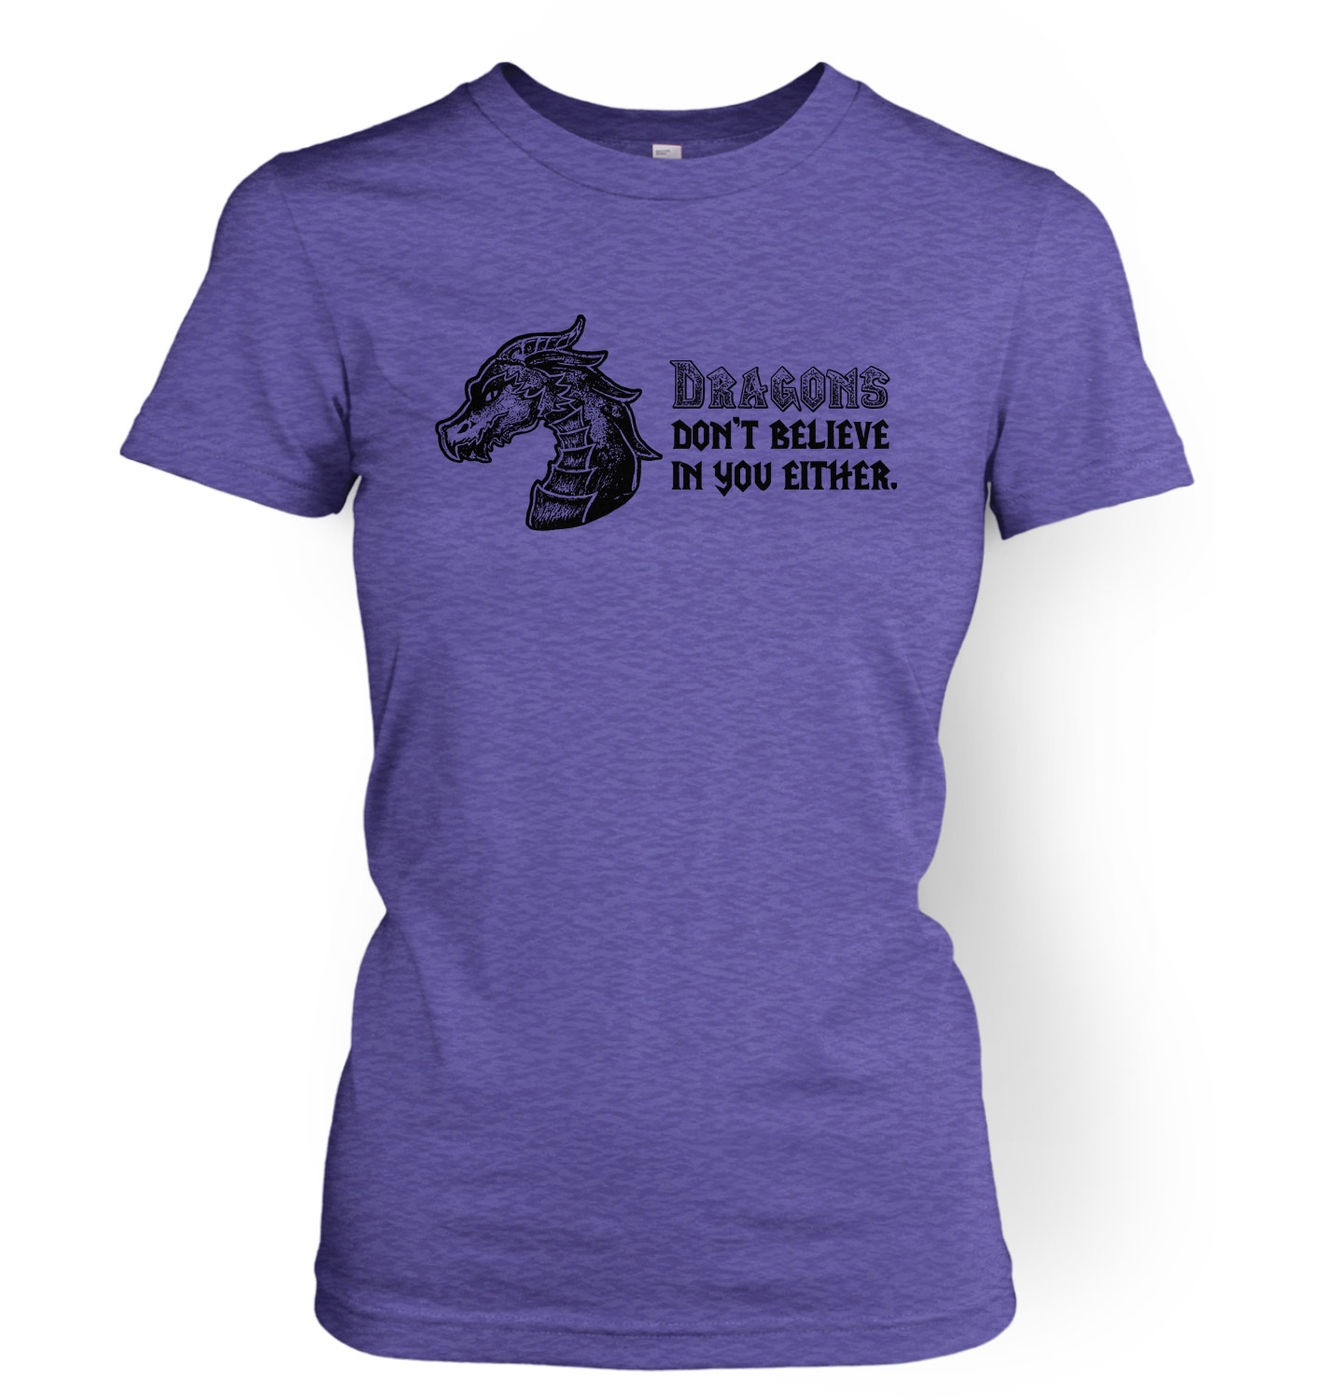 Dragons Don't Believe In You women's t-shirt by Something Geeky